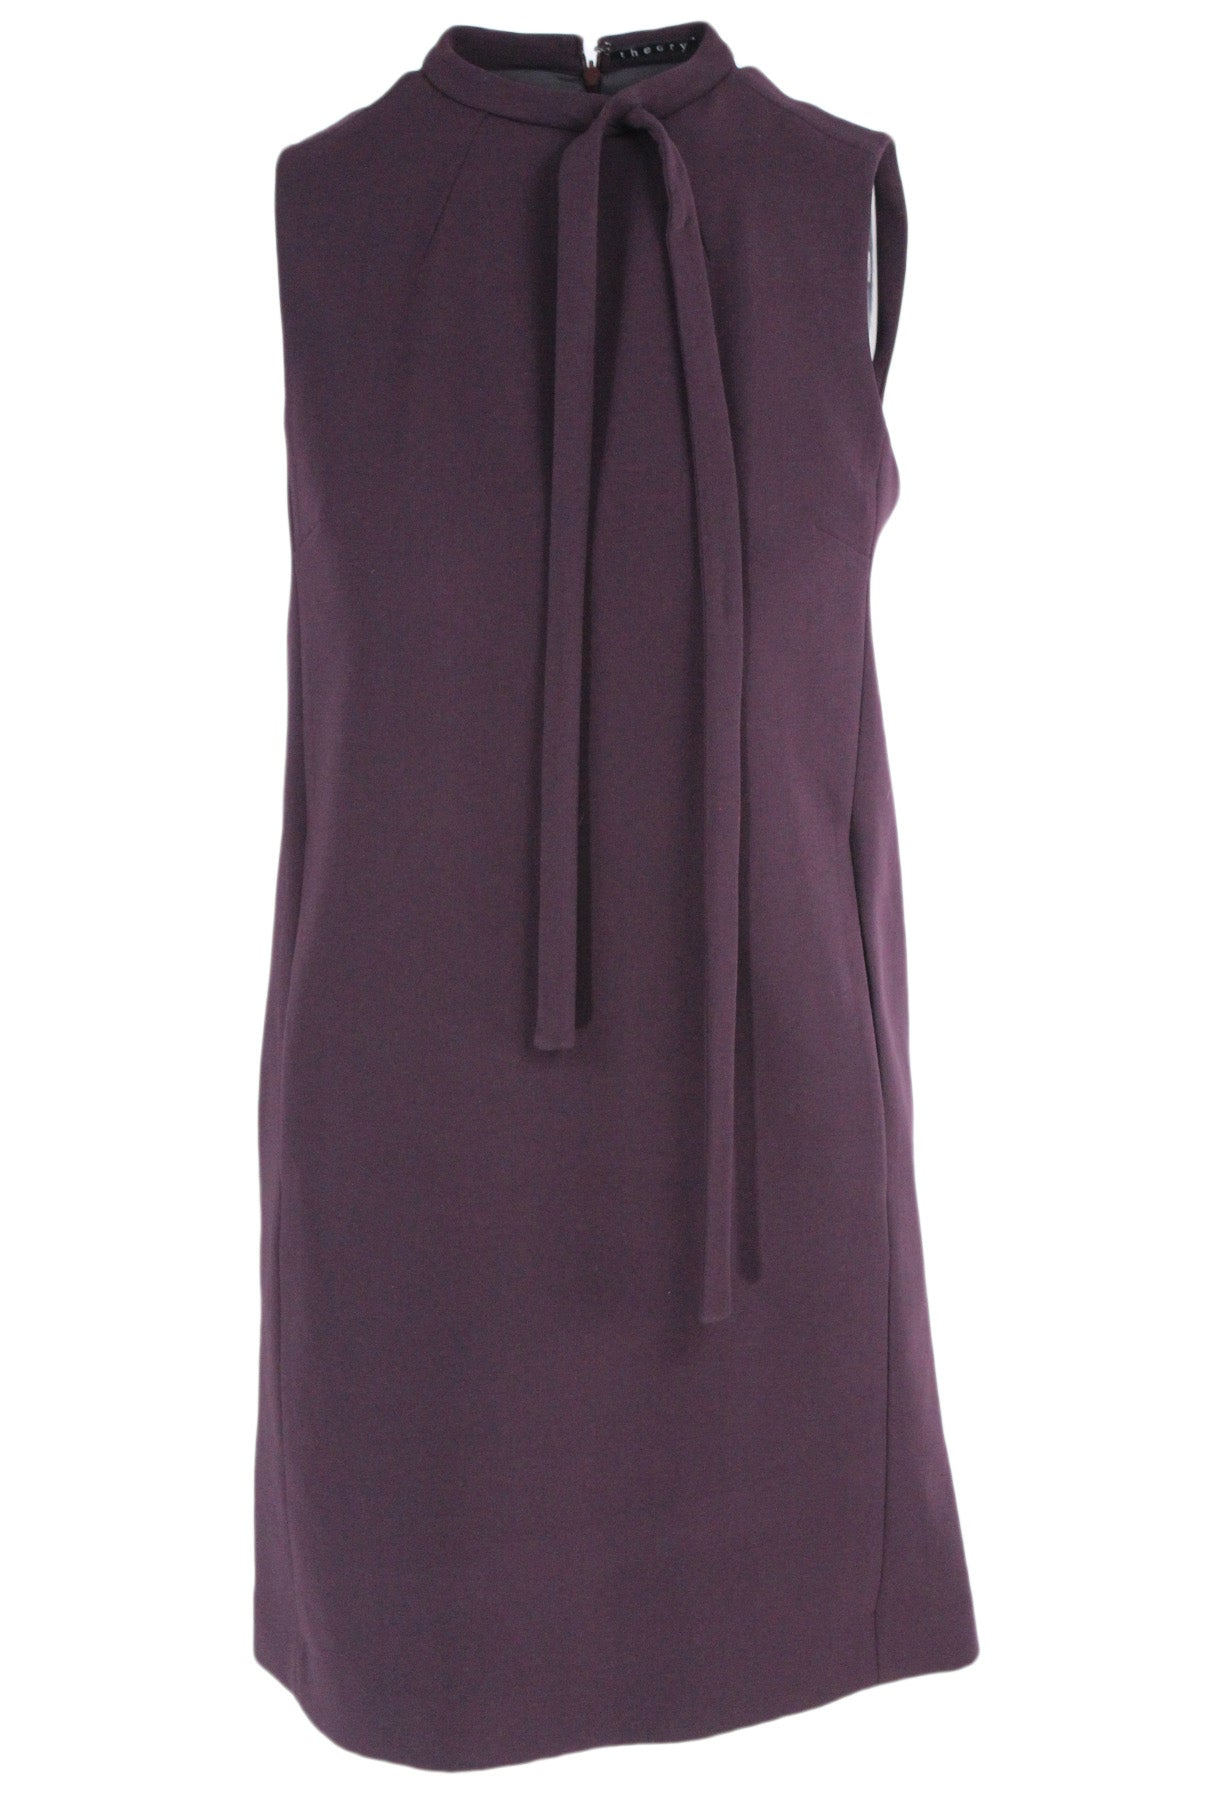 theory plum mockneck sheath dress. features self tie neckline, two side pockets concealed within seam line detail, & a concealed back zipper closure. lined interior.